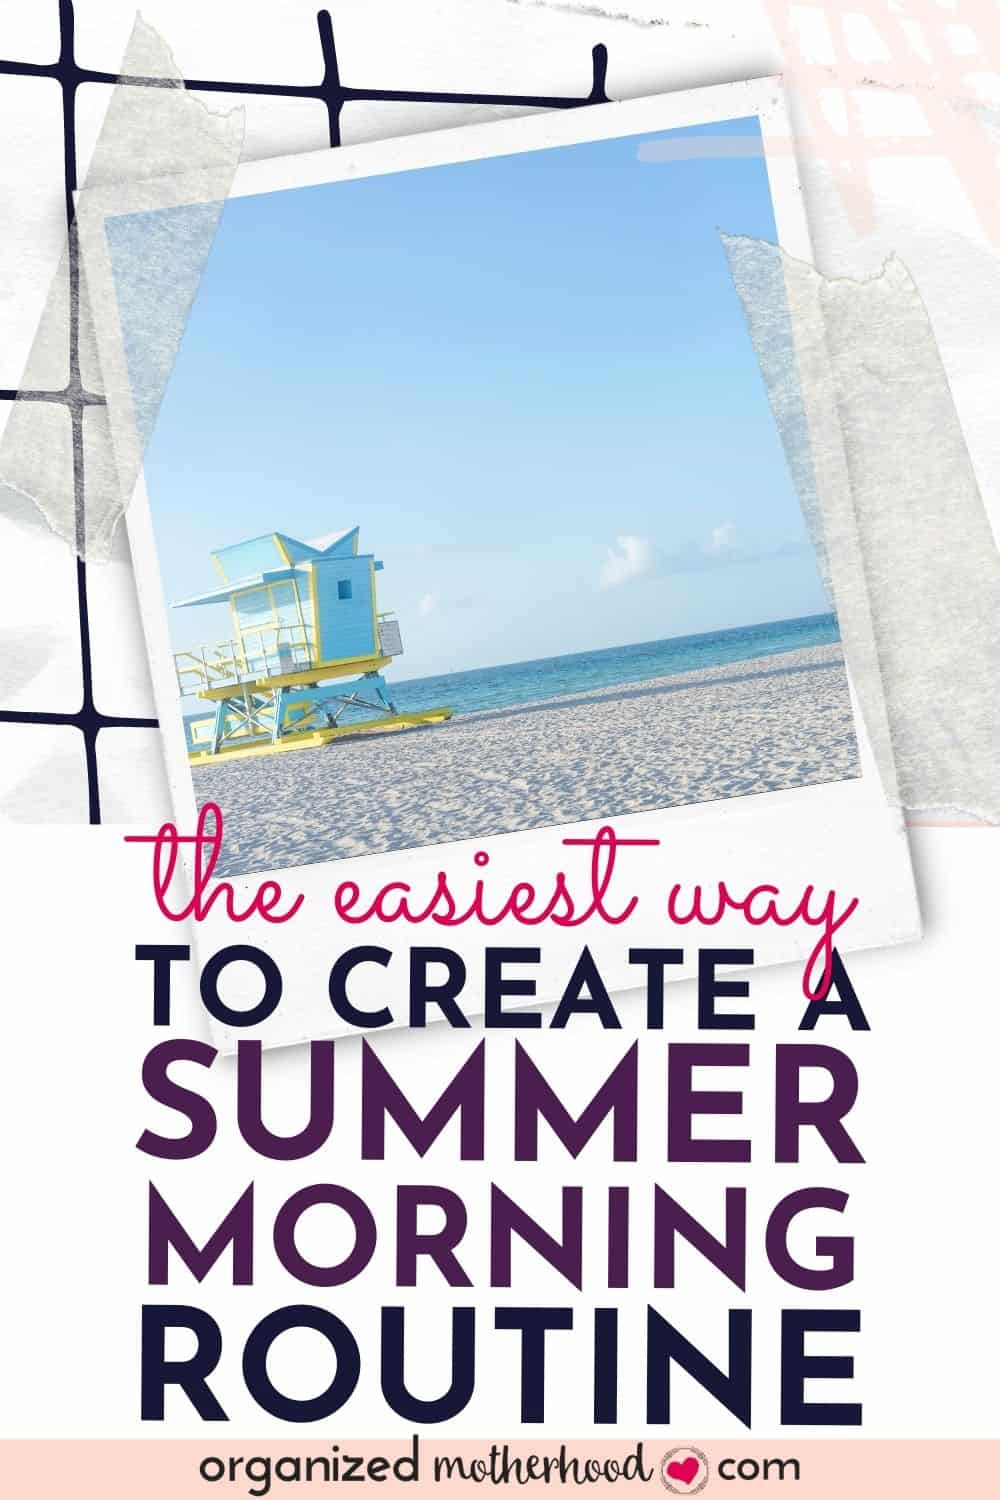 The easiest way to create a summer morning routine.